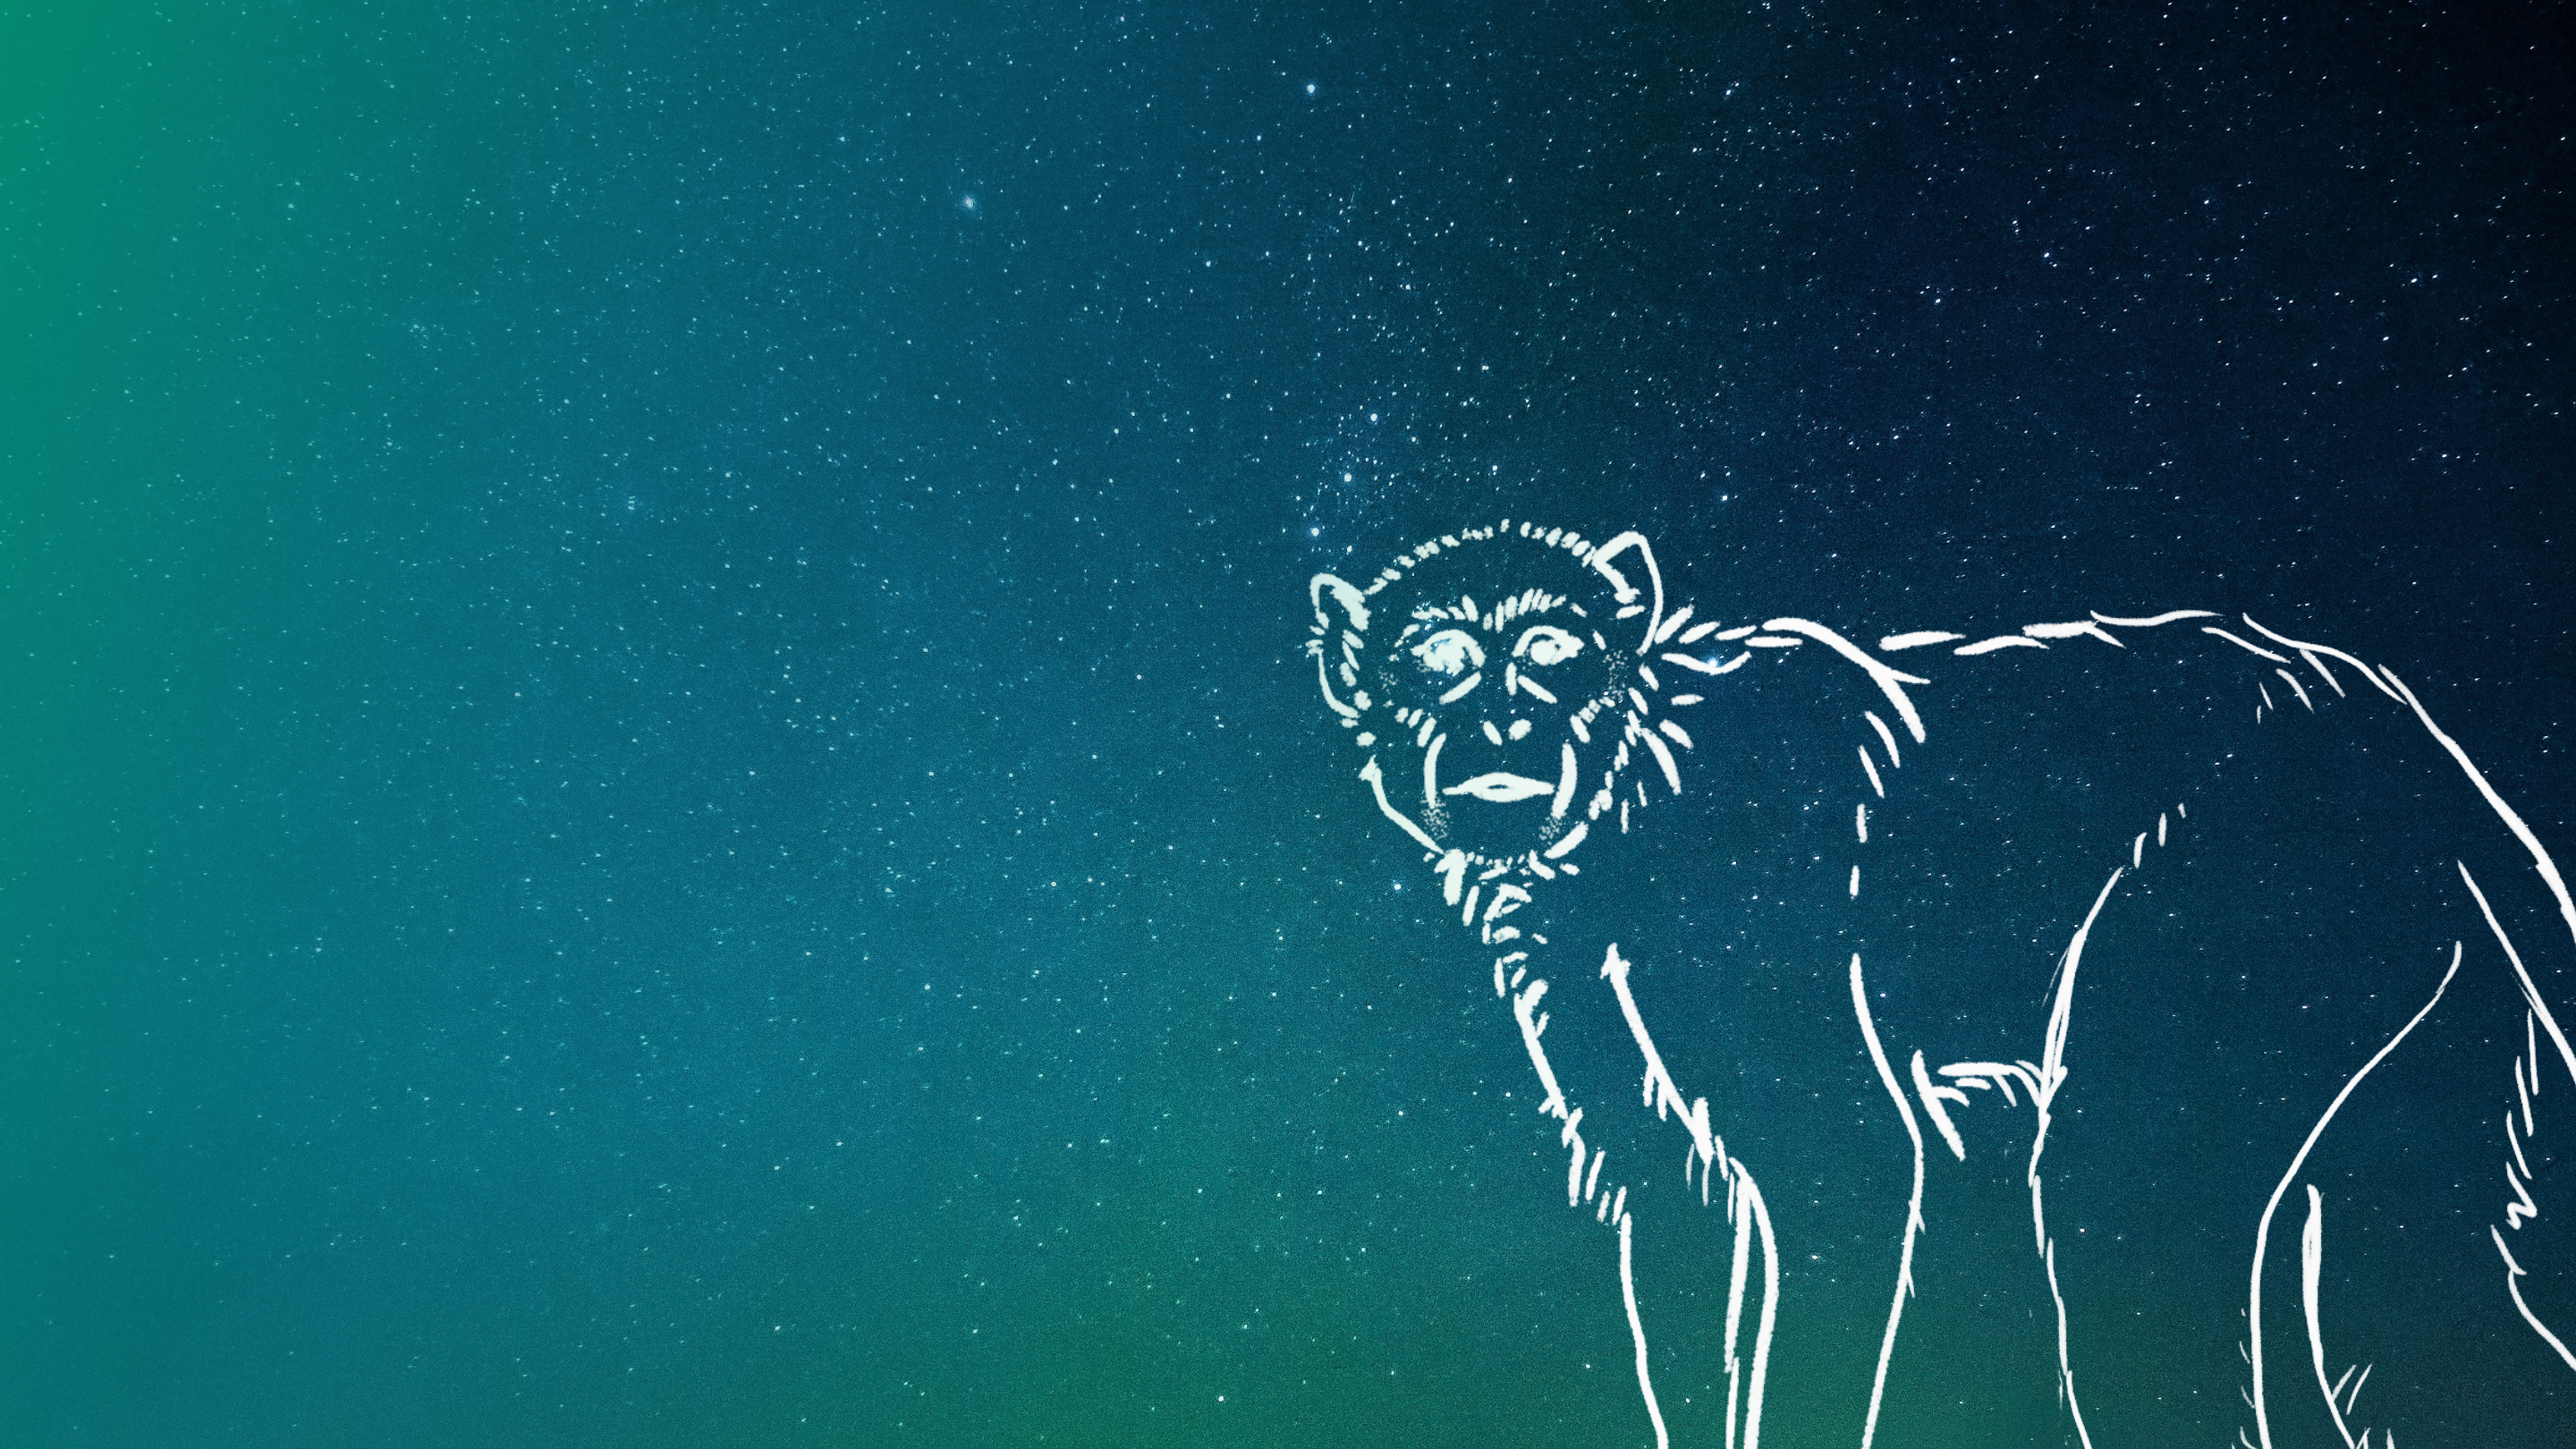 Image: A loose sketch of a monkey over a blue-green starry sky